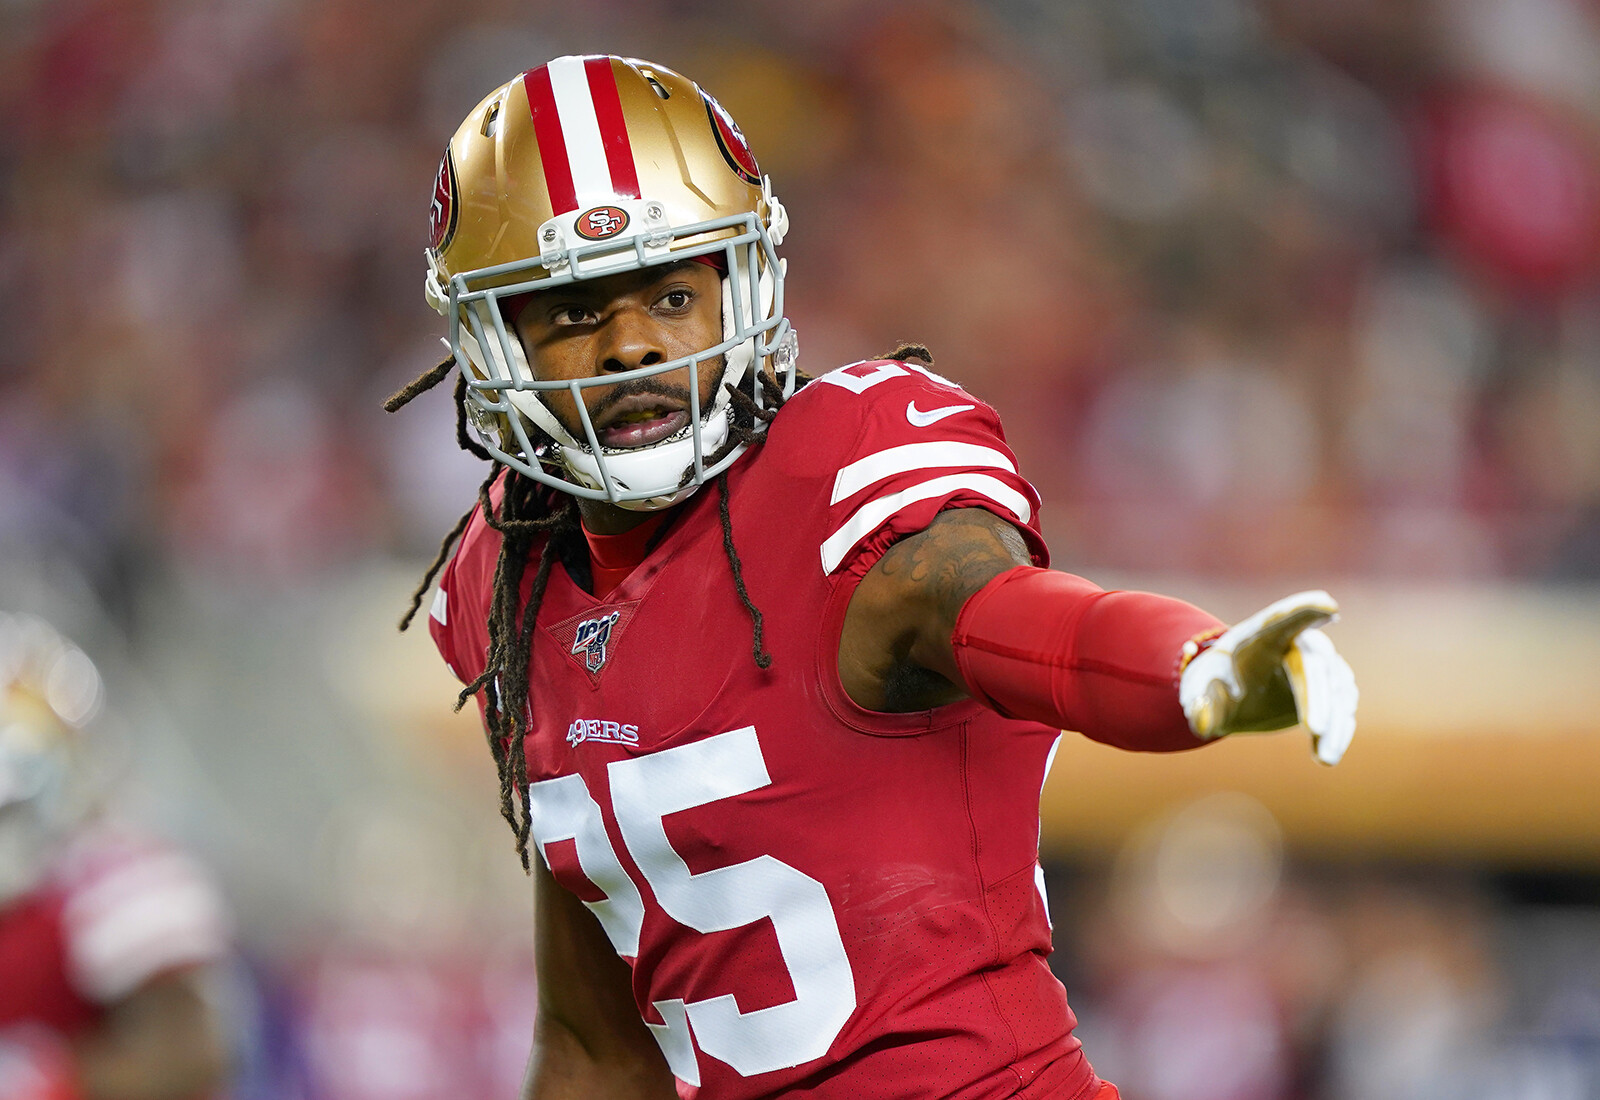 In 911 calls before Richard Sherman's arrest, wife said Sherman was threatening suicide